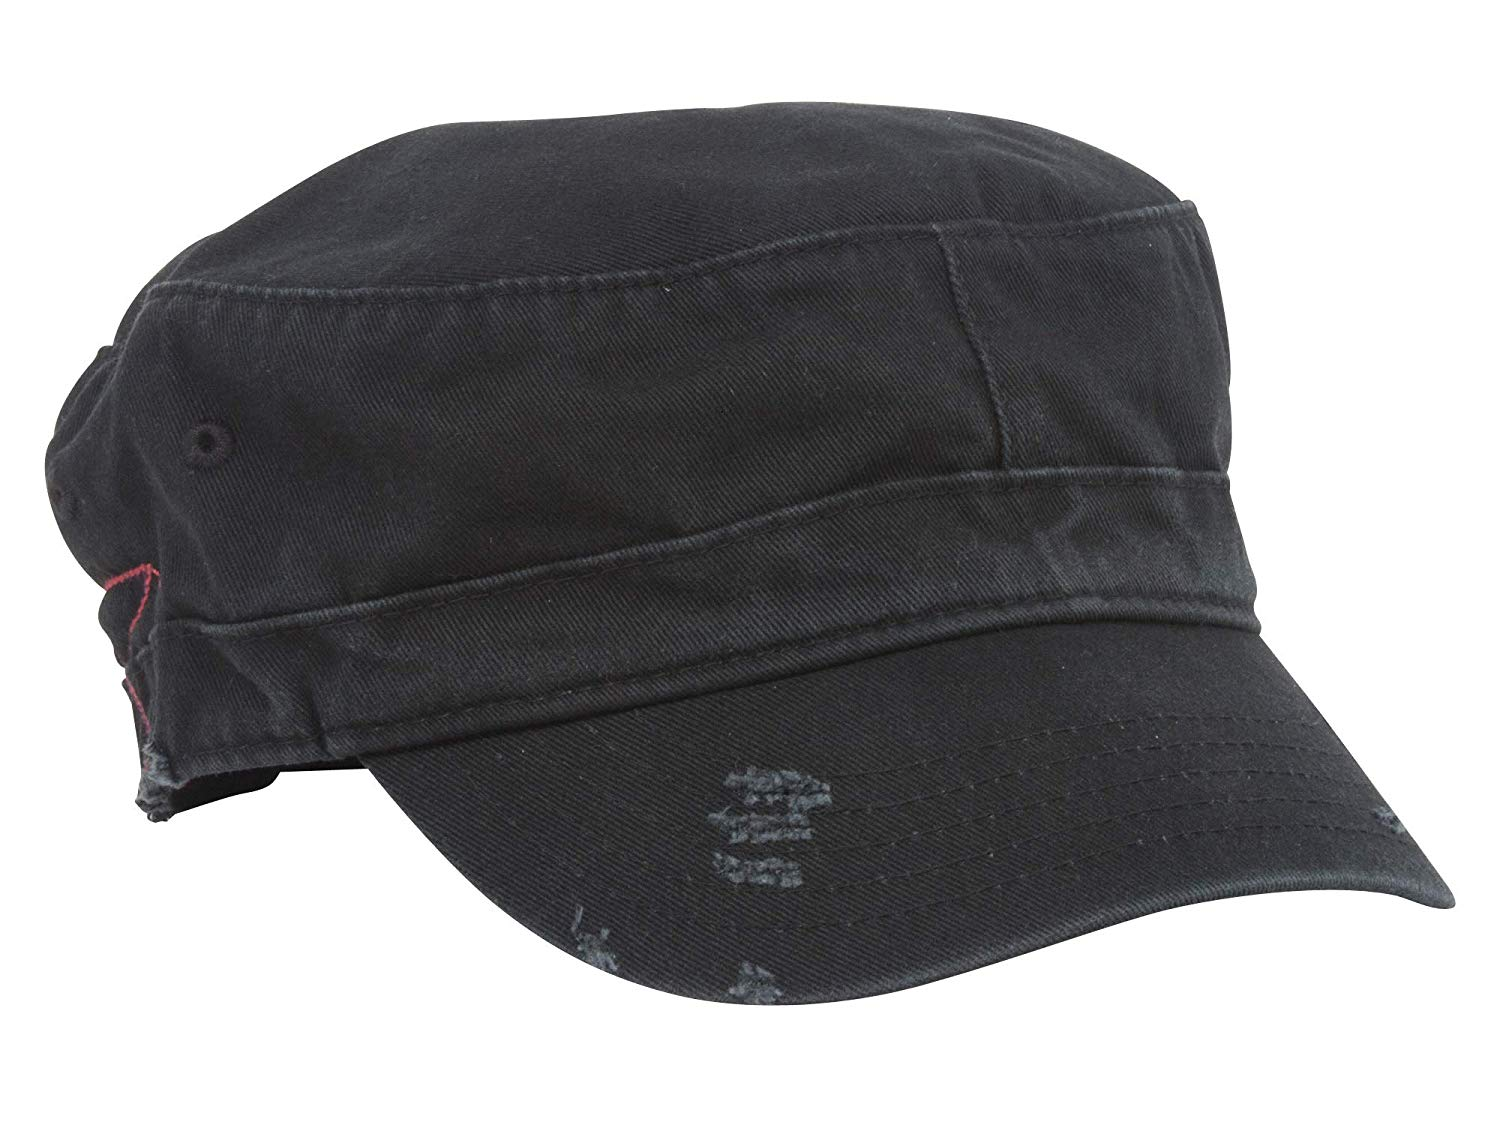 MG Distressed Washed Cotton Cadet Army Cap